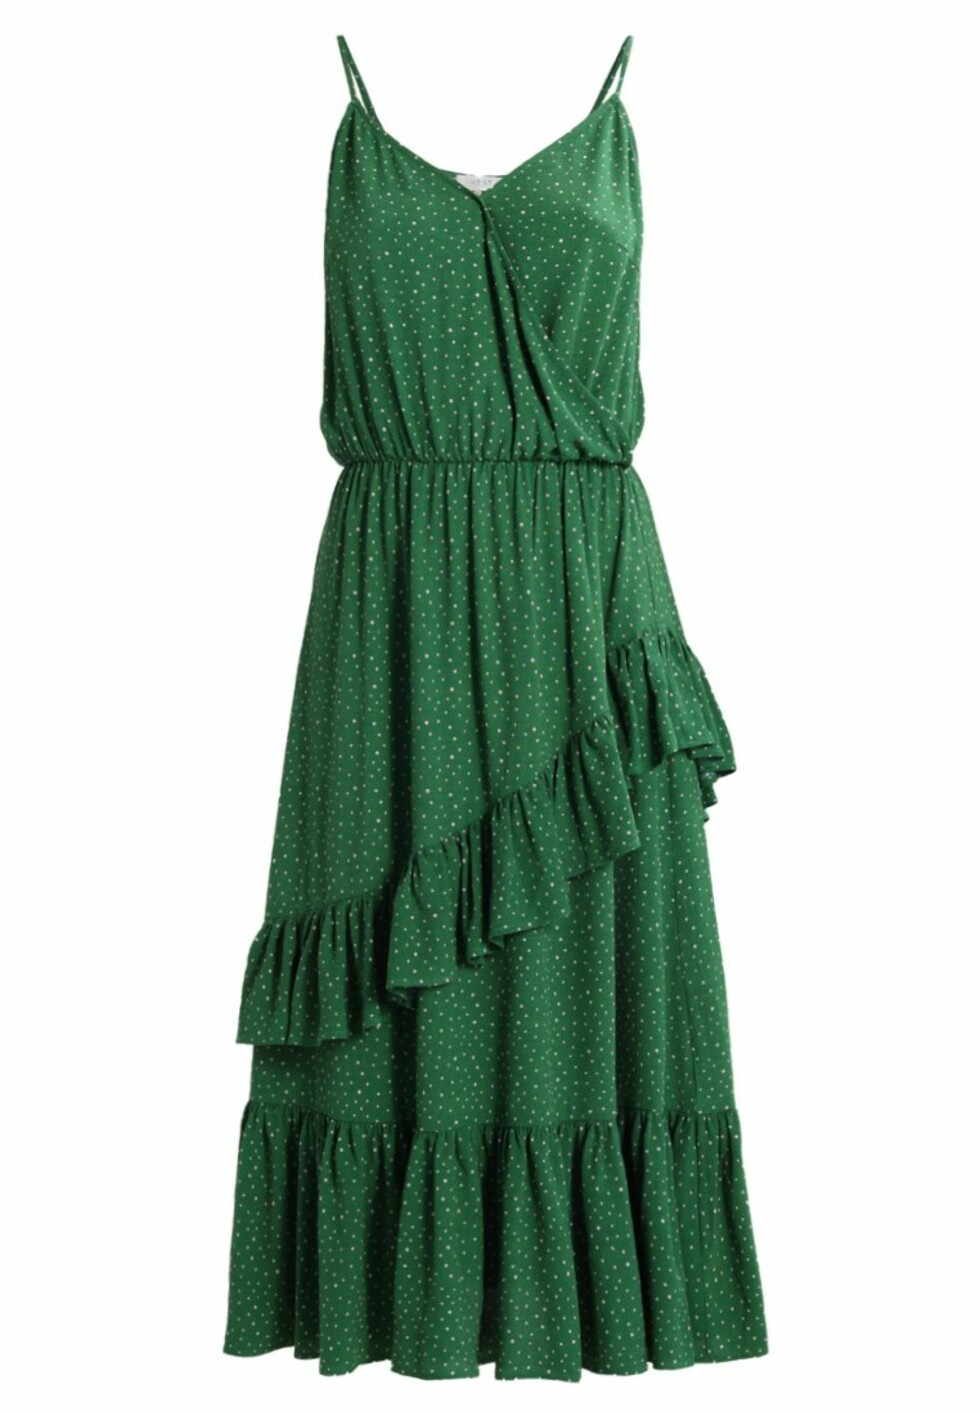 Kjole fra Just Female |1195,-| https://www.zalando.no/just-female-fernanda-dress-sommerkjole-gruen-ju121c02t-m11.html